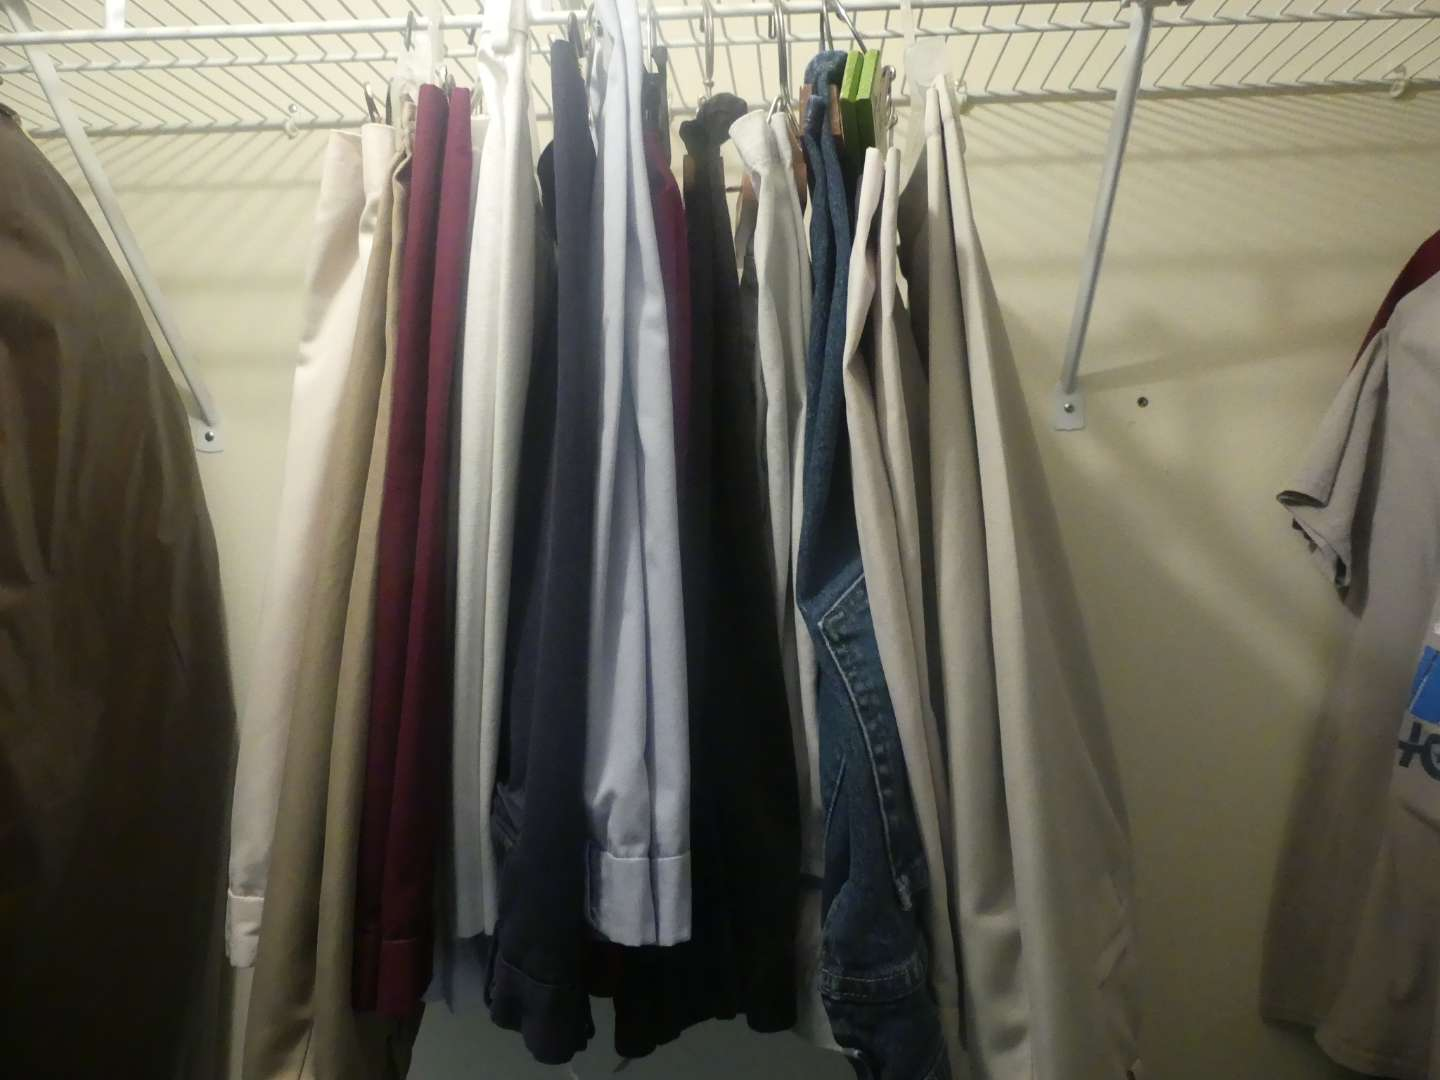 Lot #84 Lot of Men's Pants - Mostly Casual, Mostly Sizes 34 and 36